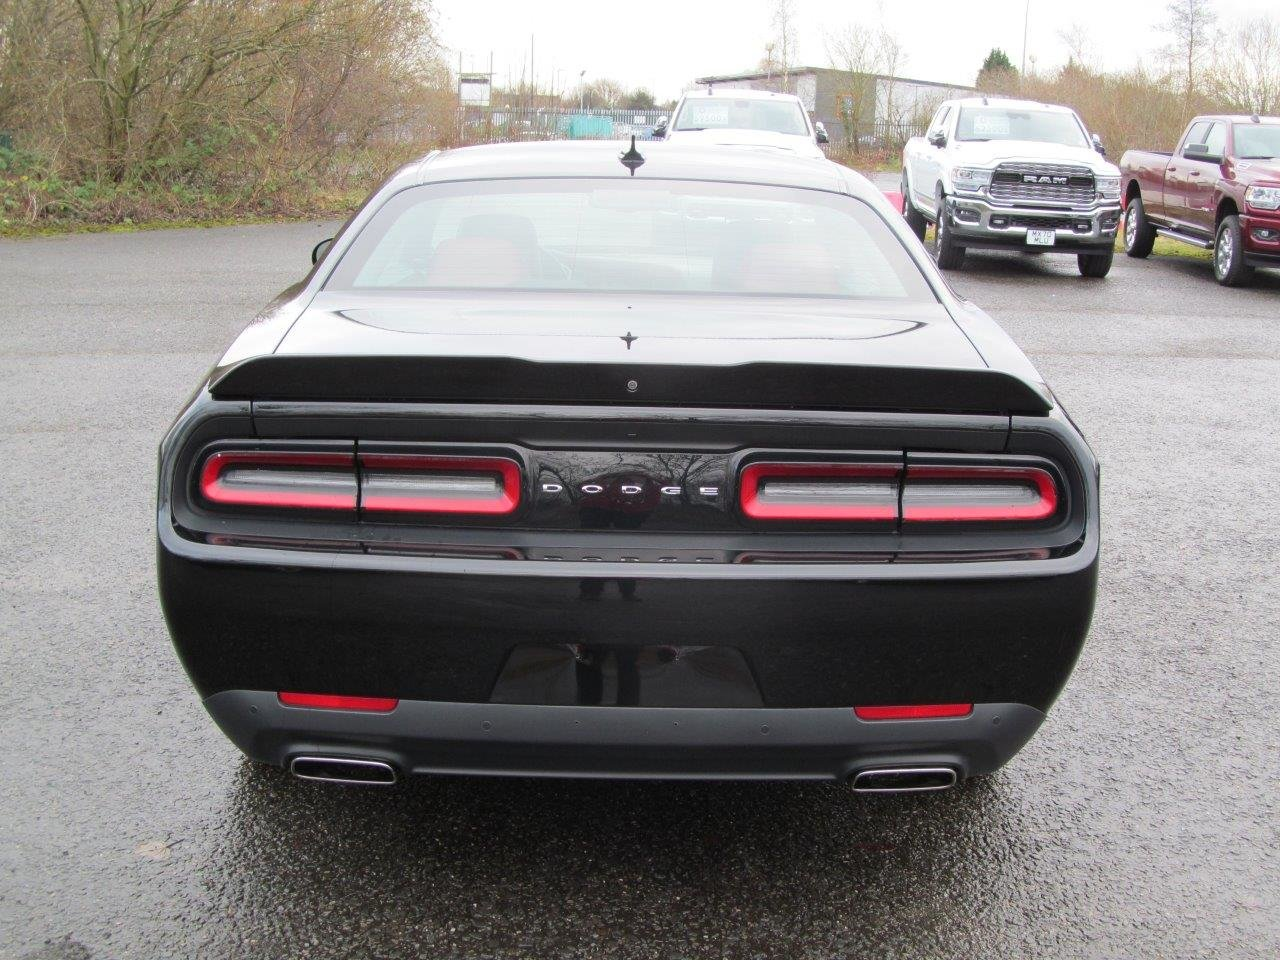 2020 Dodge Challenger SXT Plus RWD 8-Speed Automatic LHD For Sale (picture 4 of 12)